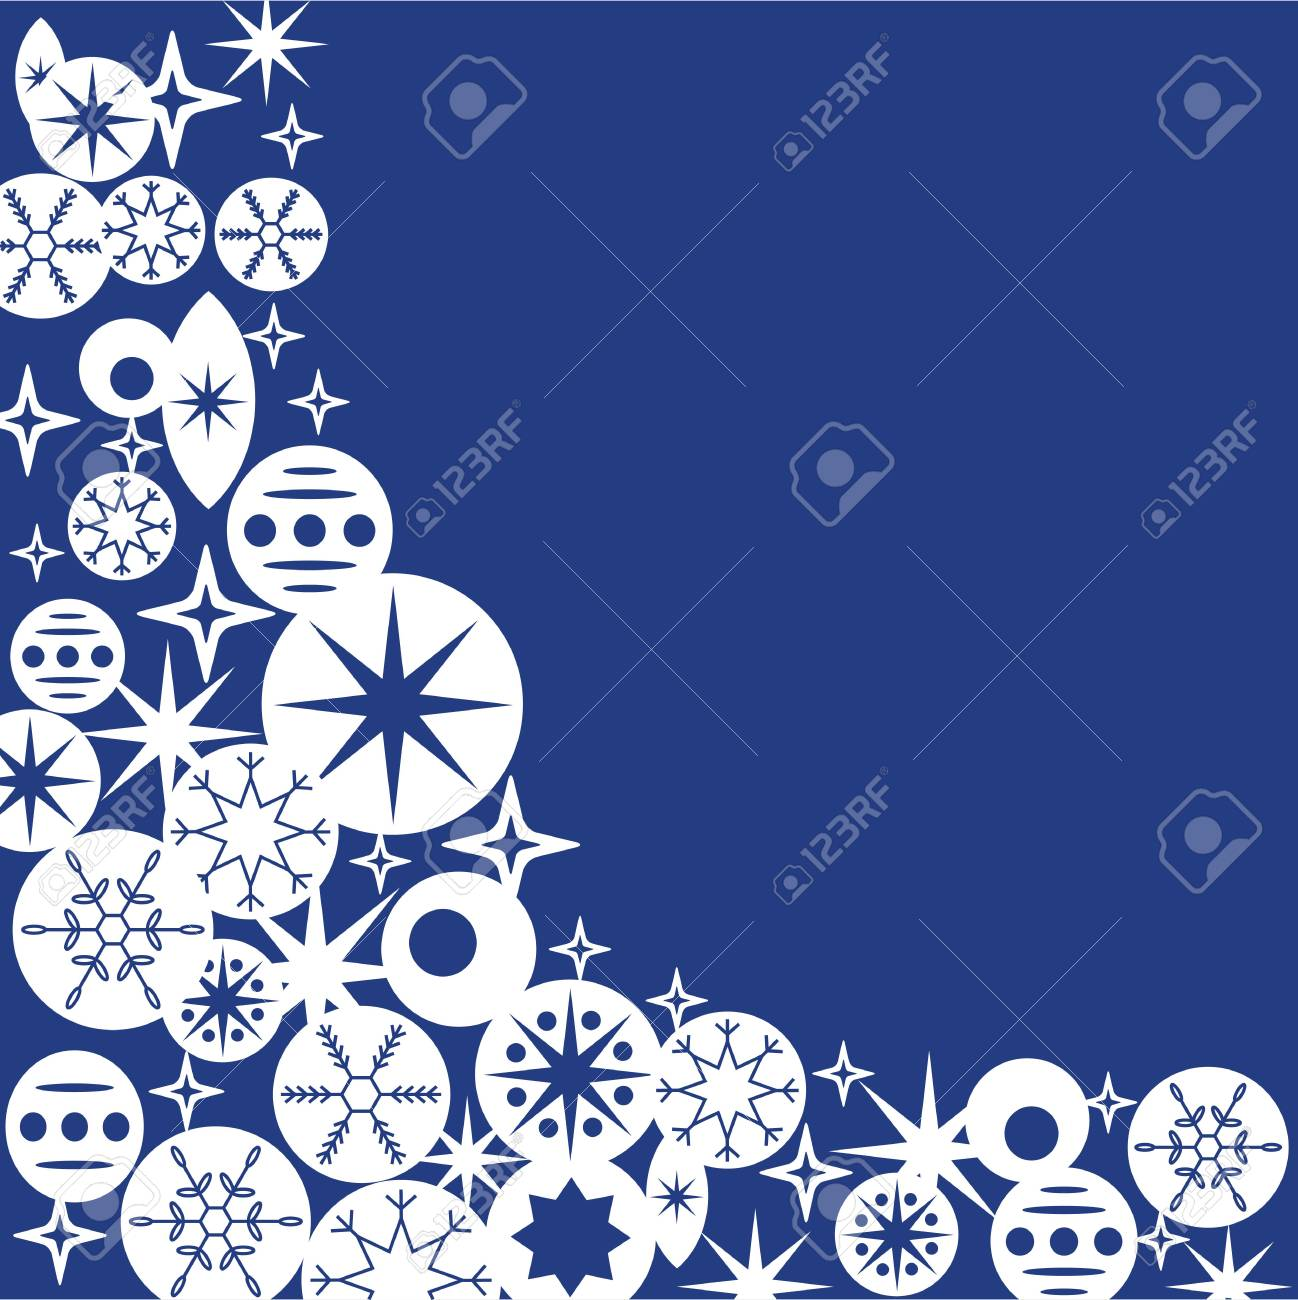 template for christmas card invitation backgrounds with space